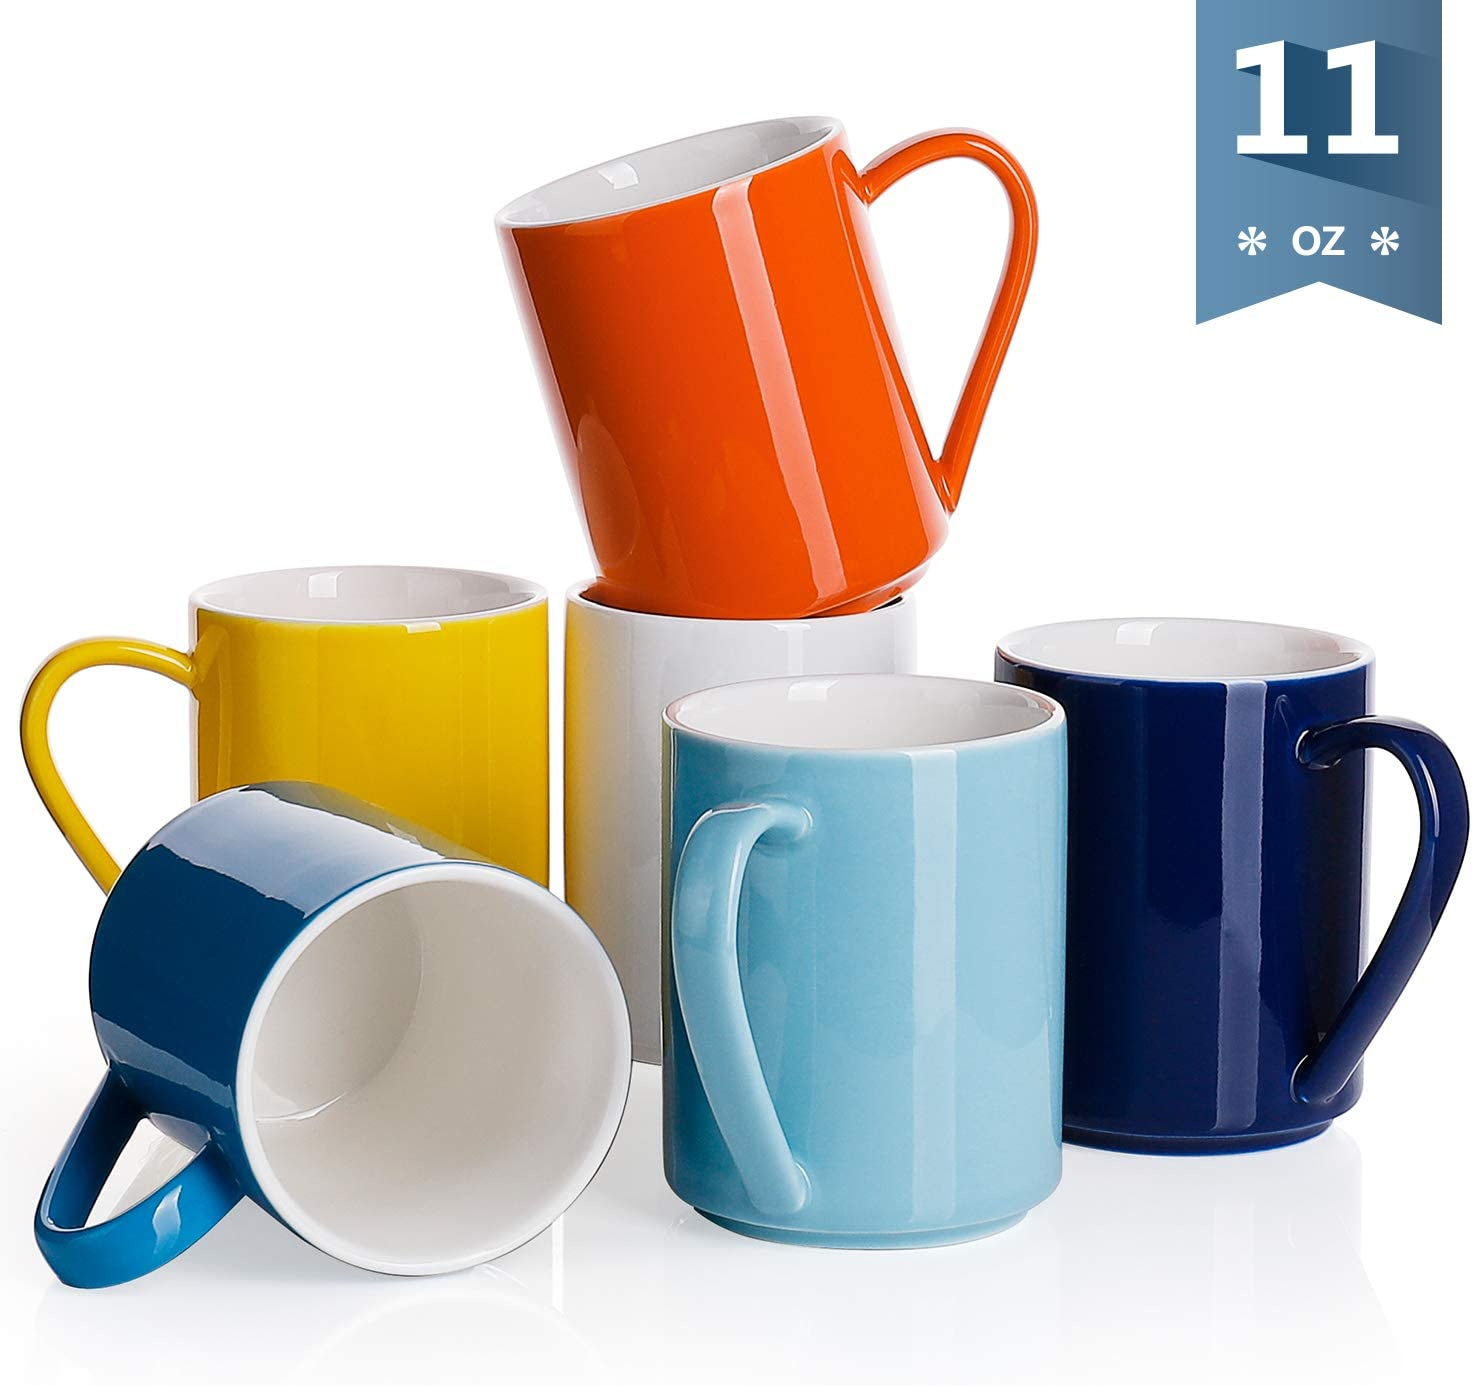 Sweese 603.002 Porcelain Coffee Mug Set - 11 Ounce for Coffee, Tea, Cocoa and Mulled Drinks - Set of 6, Hot Assorted Colors